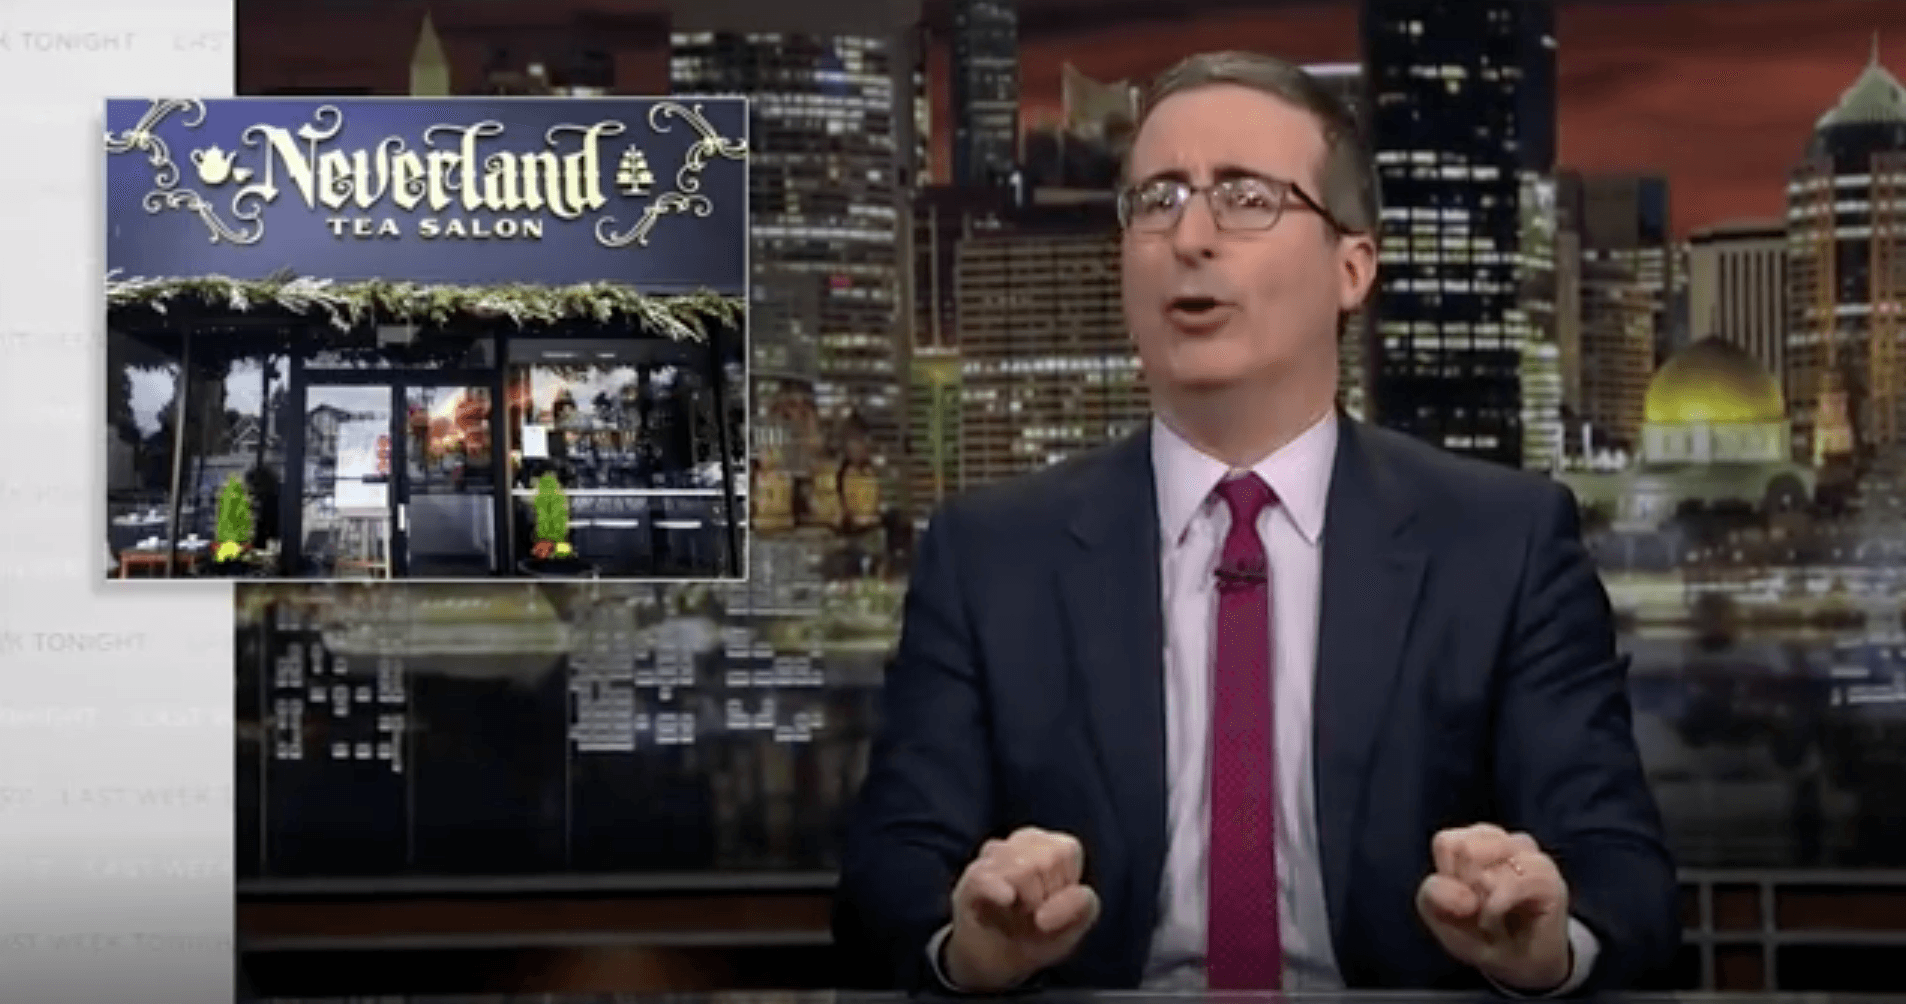 Vancouver tea salon mentioned on Last Week Tonight with John Oliver